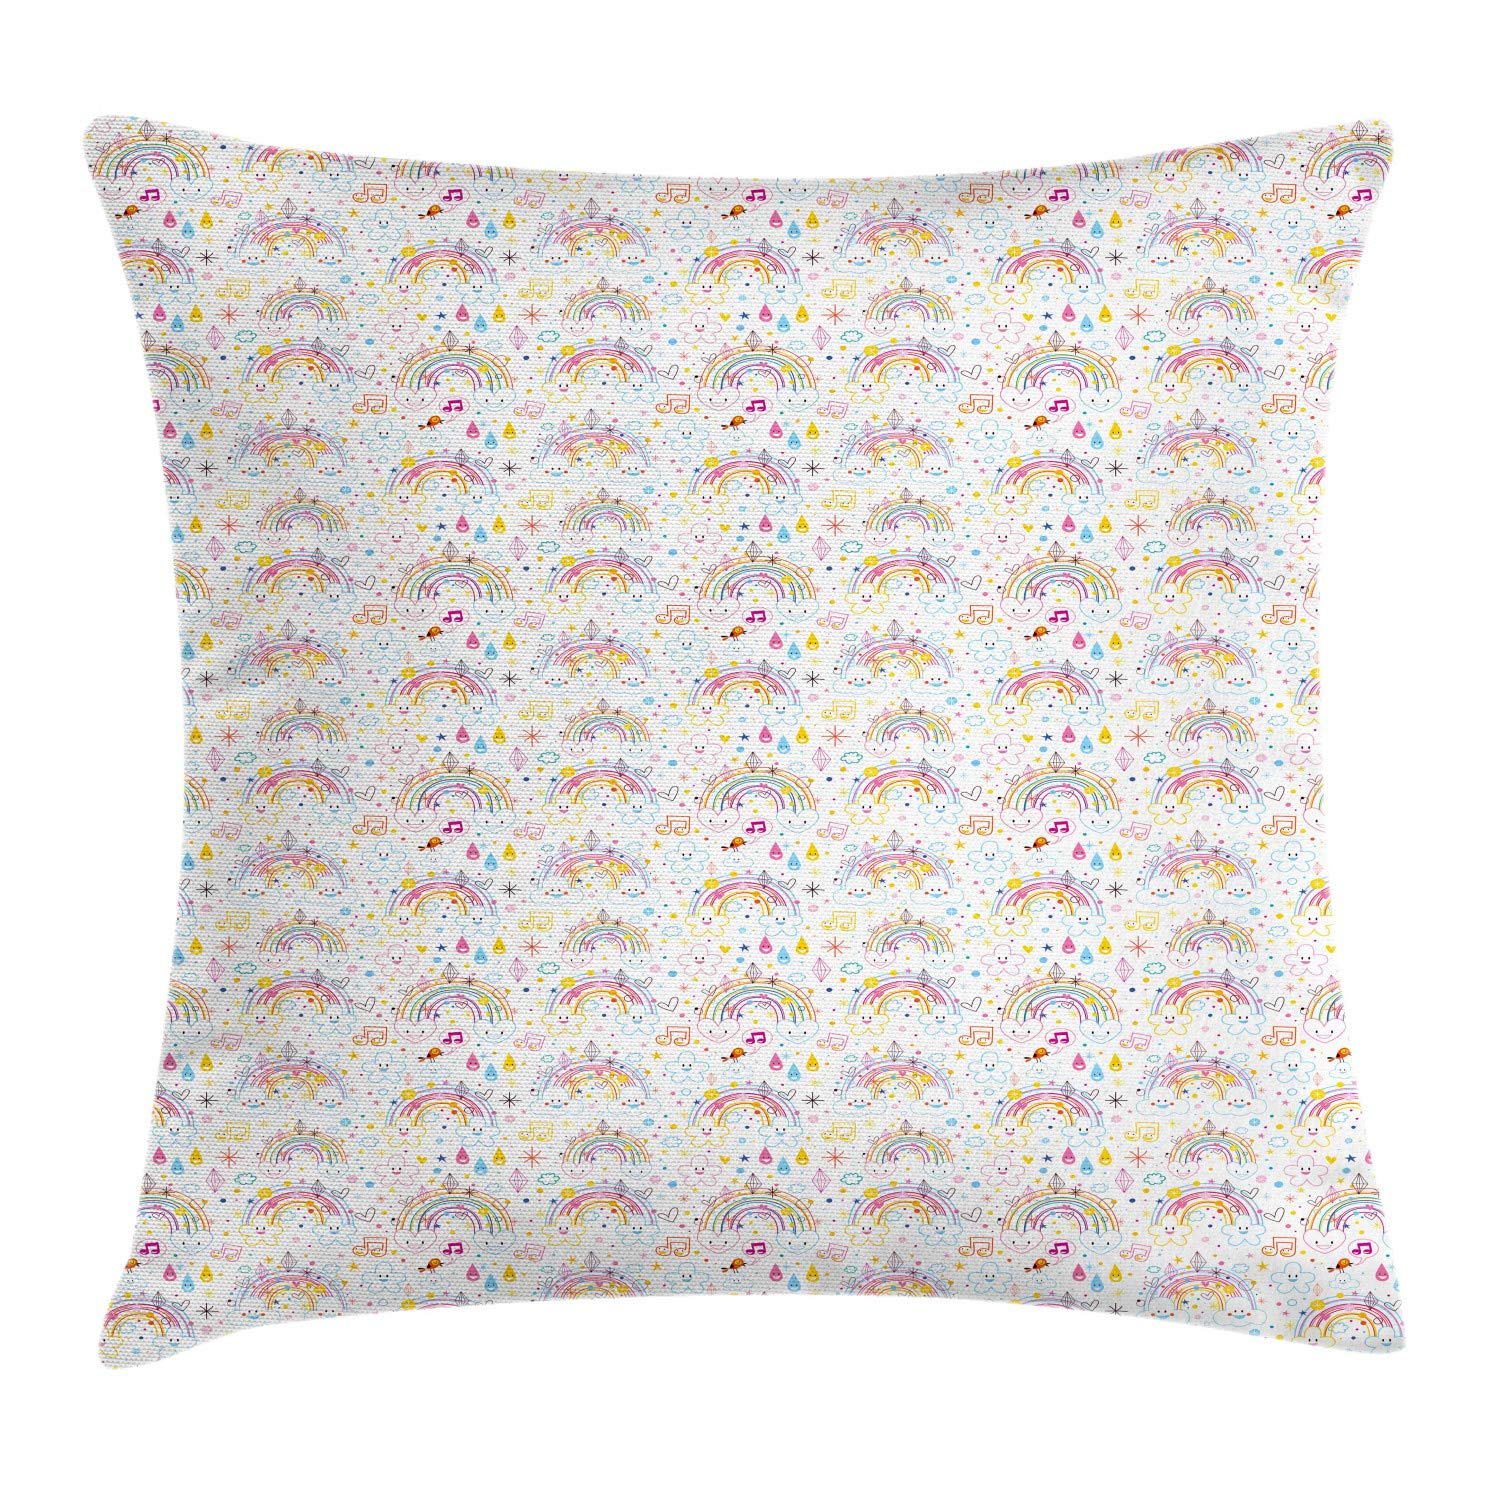 Lunarable Nursery Throw Pillow Cushion Cover, Cartoonish Colorful Outline Composition with Happy Minimal Items on Plain Backdrop, Decorative Square Accent Pillow Case, 24'' X 24'', Multicolor by Lunarable